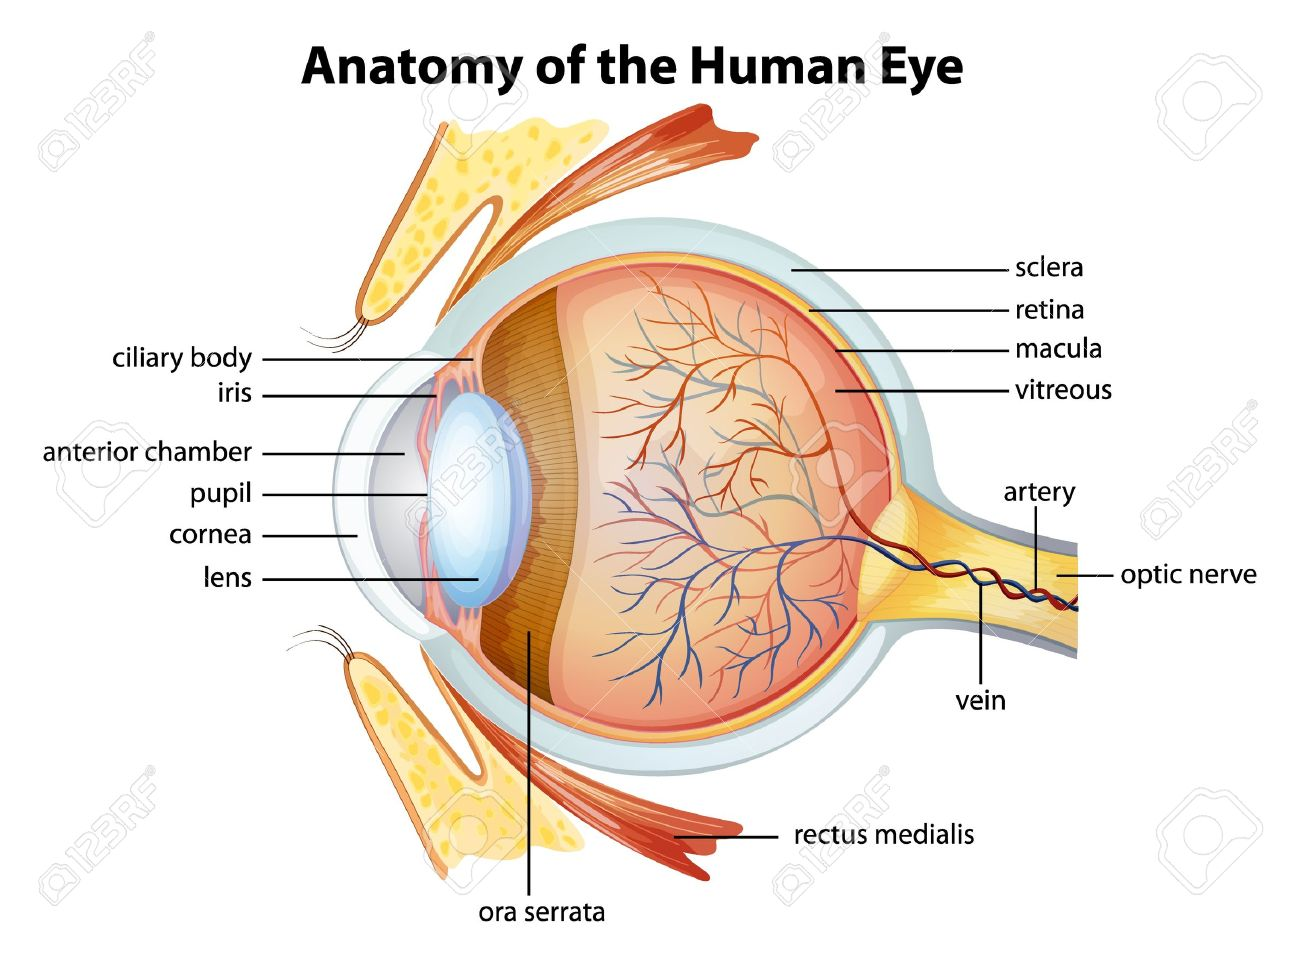 Illustration Of The Human Eye Anatomy Royalty Free Cliparts, Vectors ...